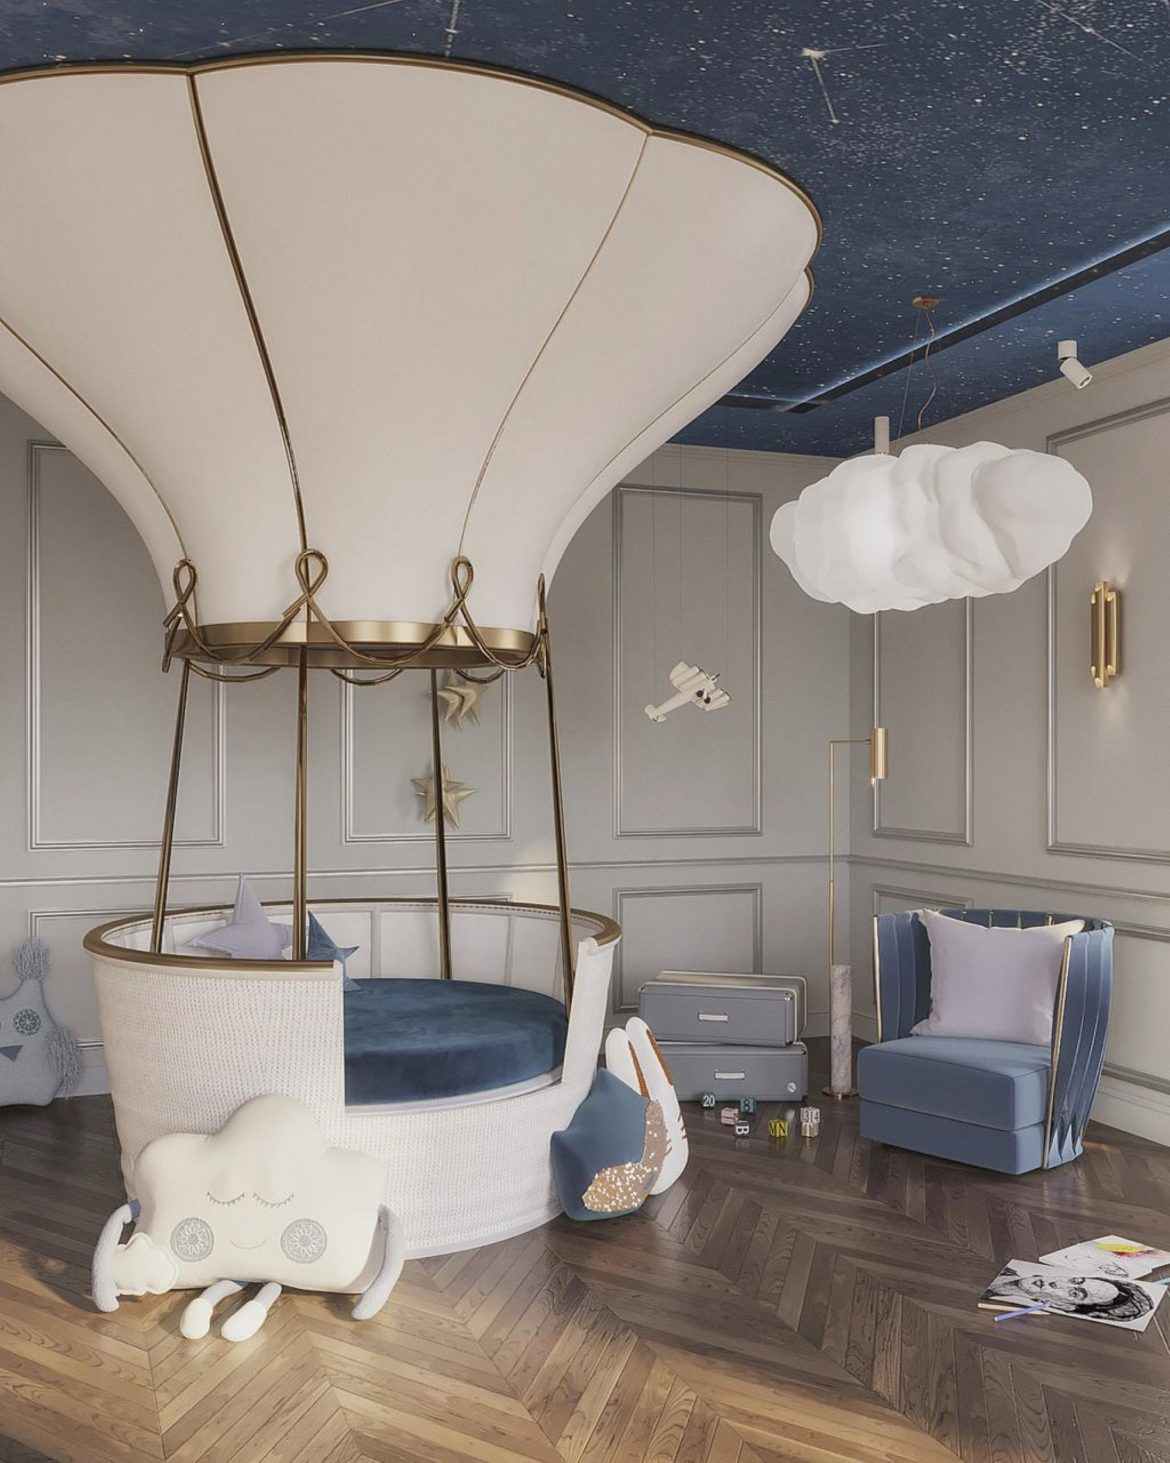 moscow Moscow: 20 Amazing Design Projects fairytale